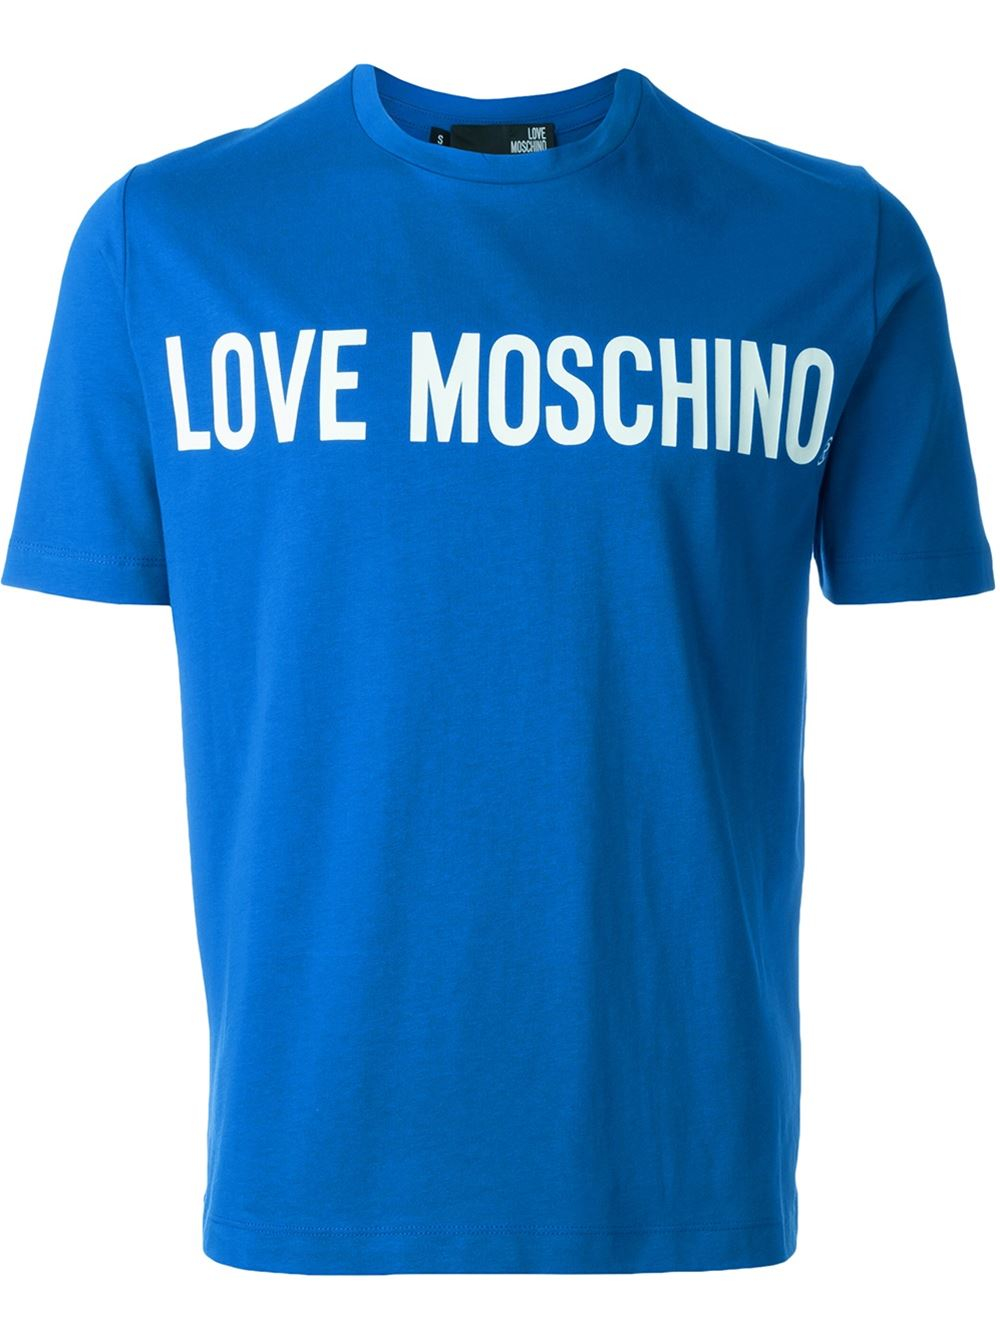 moschino love print t shirt in blue for men lyst. Black Bedroom Furniture Sets. Home Design Ideas